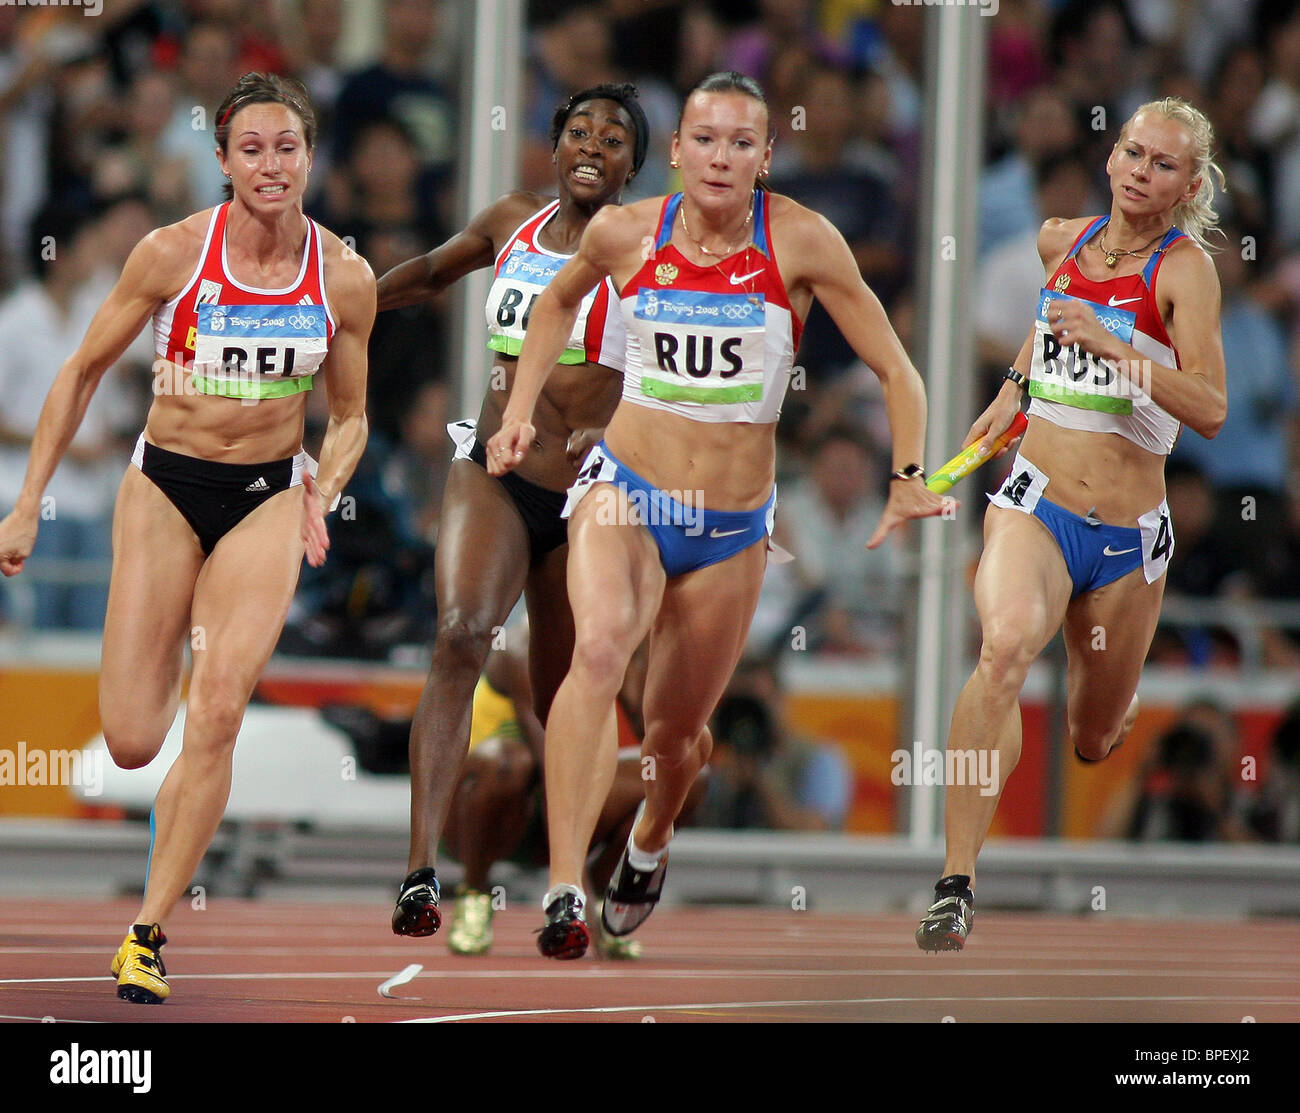 Russia wins gold in women's 4x100m relay at Beijing Olympics - Stock Image